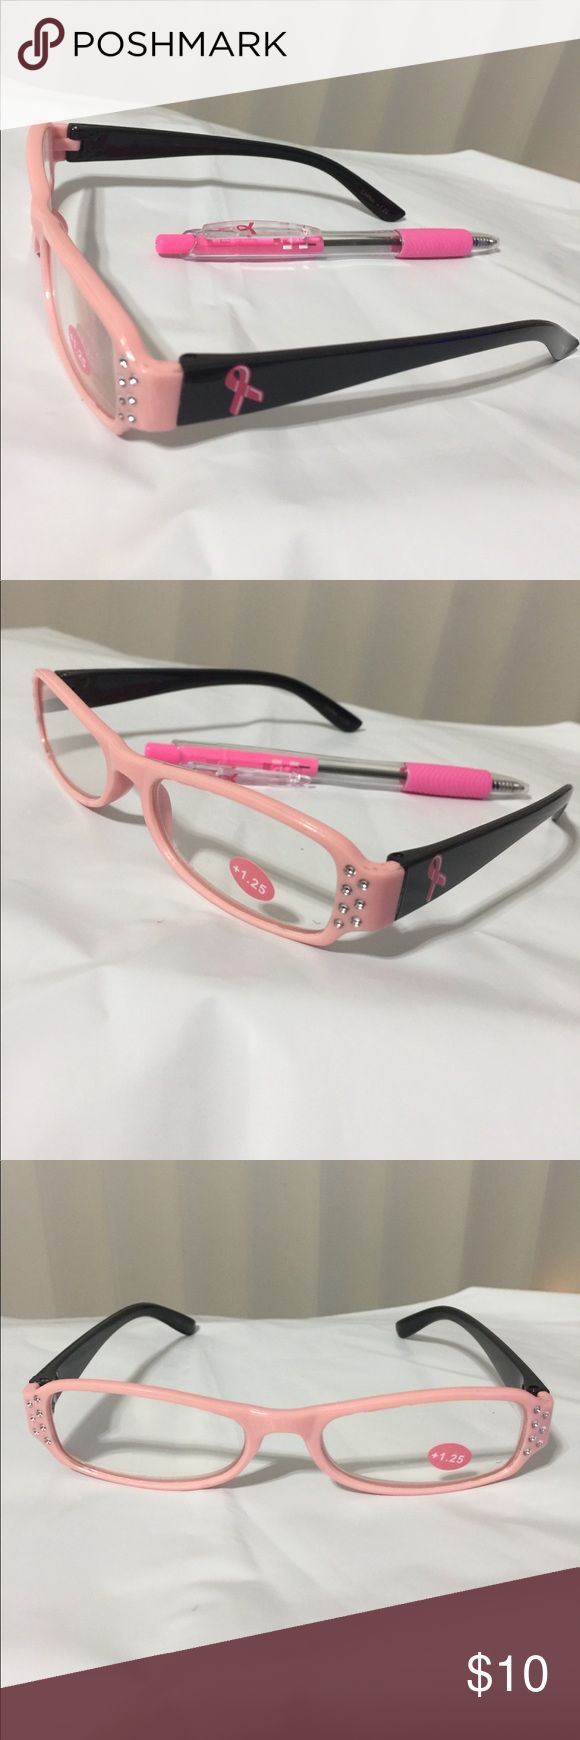 Breast Cancer Awareness Pink Reading Glasses & Pen Breast Cancer Awareness Reading Glasses.  We are adding a Pink Breast Cancer Awareness Pen at no extra charge making this an even better deal. When you order, the size is the power rating for the Magnification strength of the Glasses. Greenbrier International Accessories Glasses